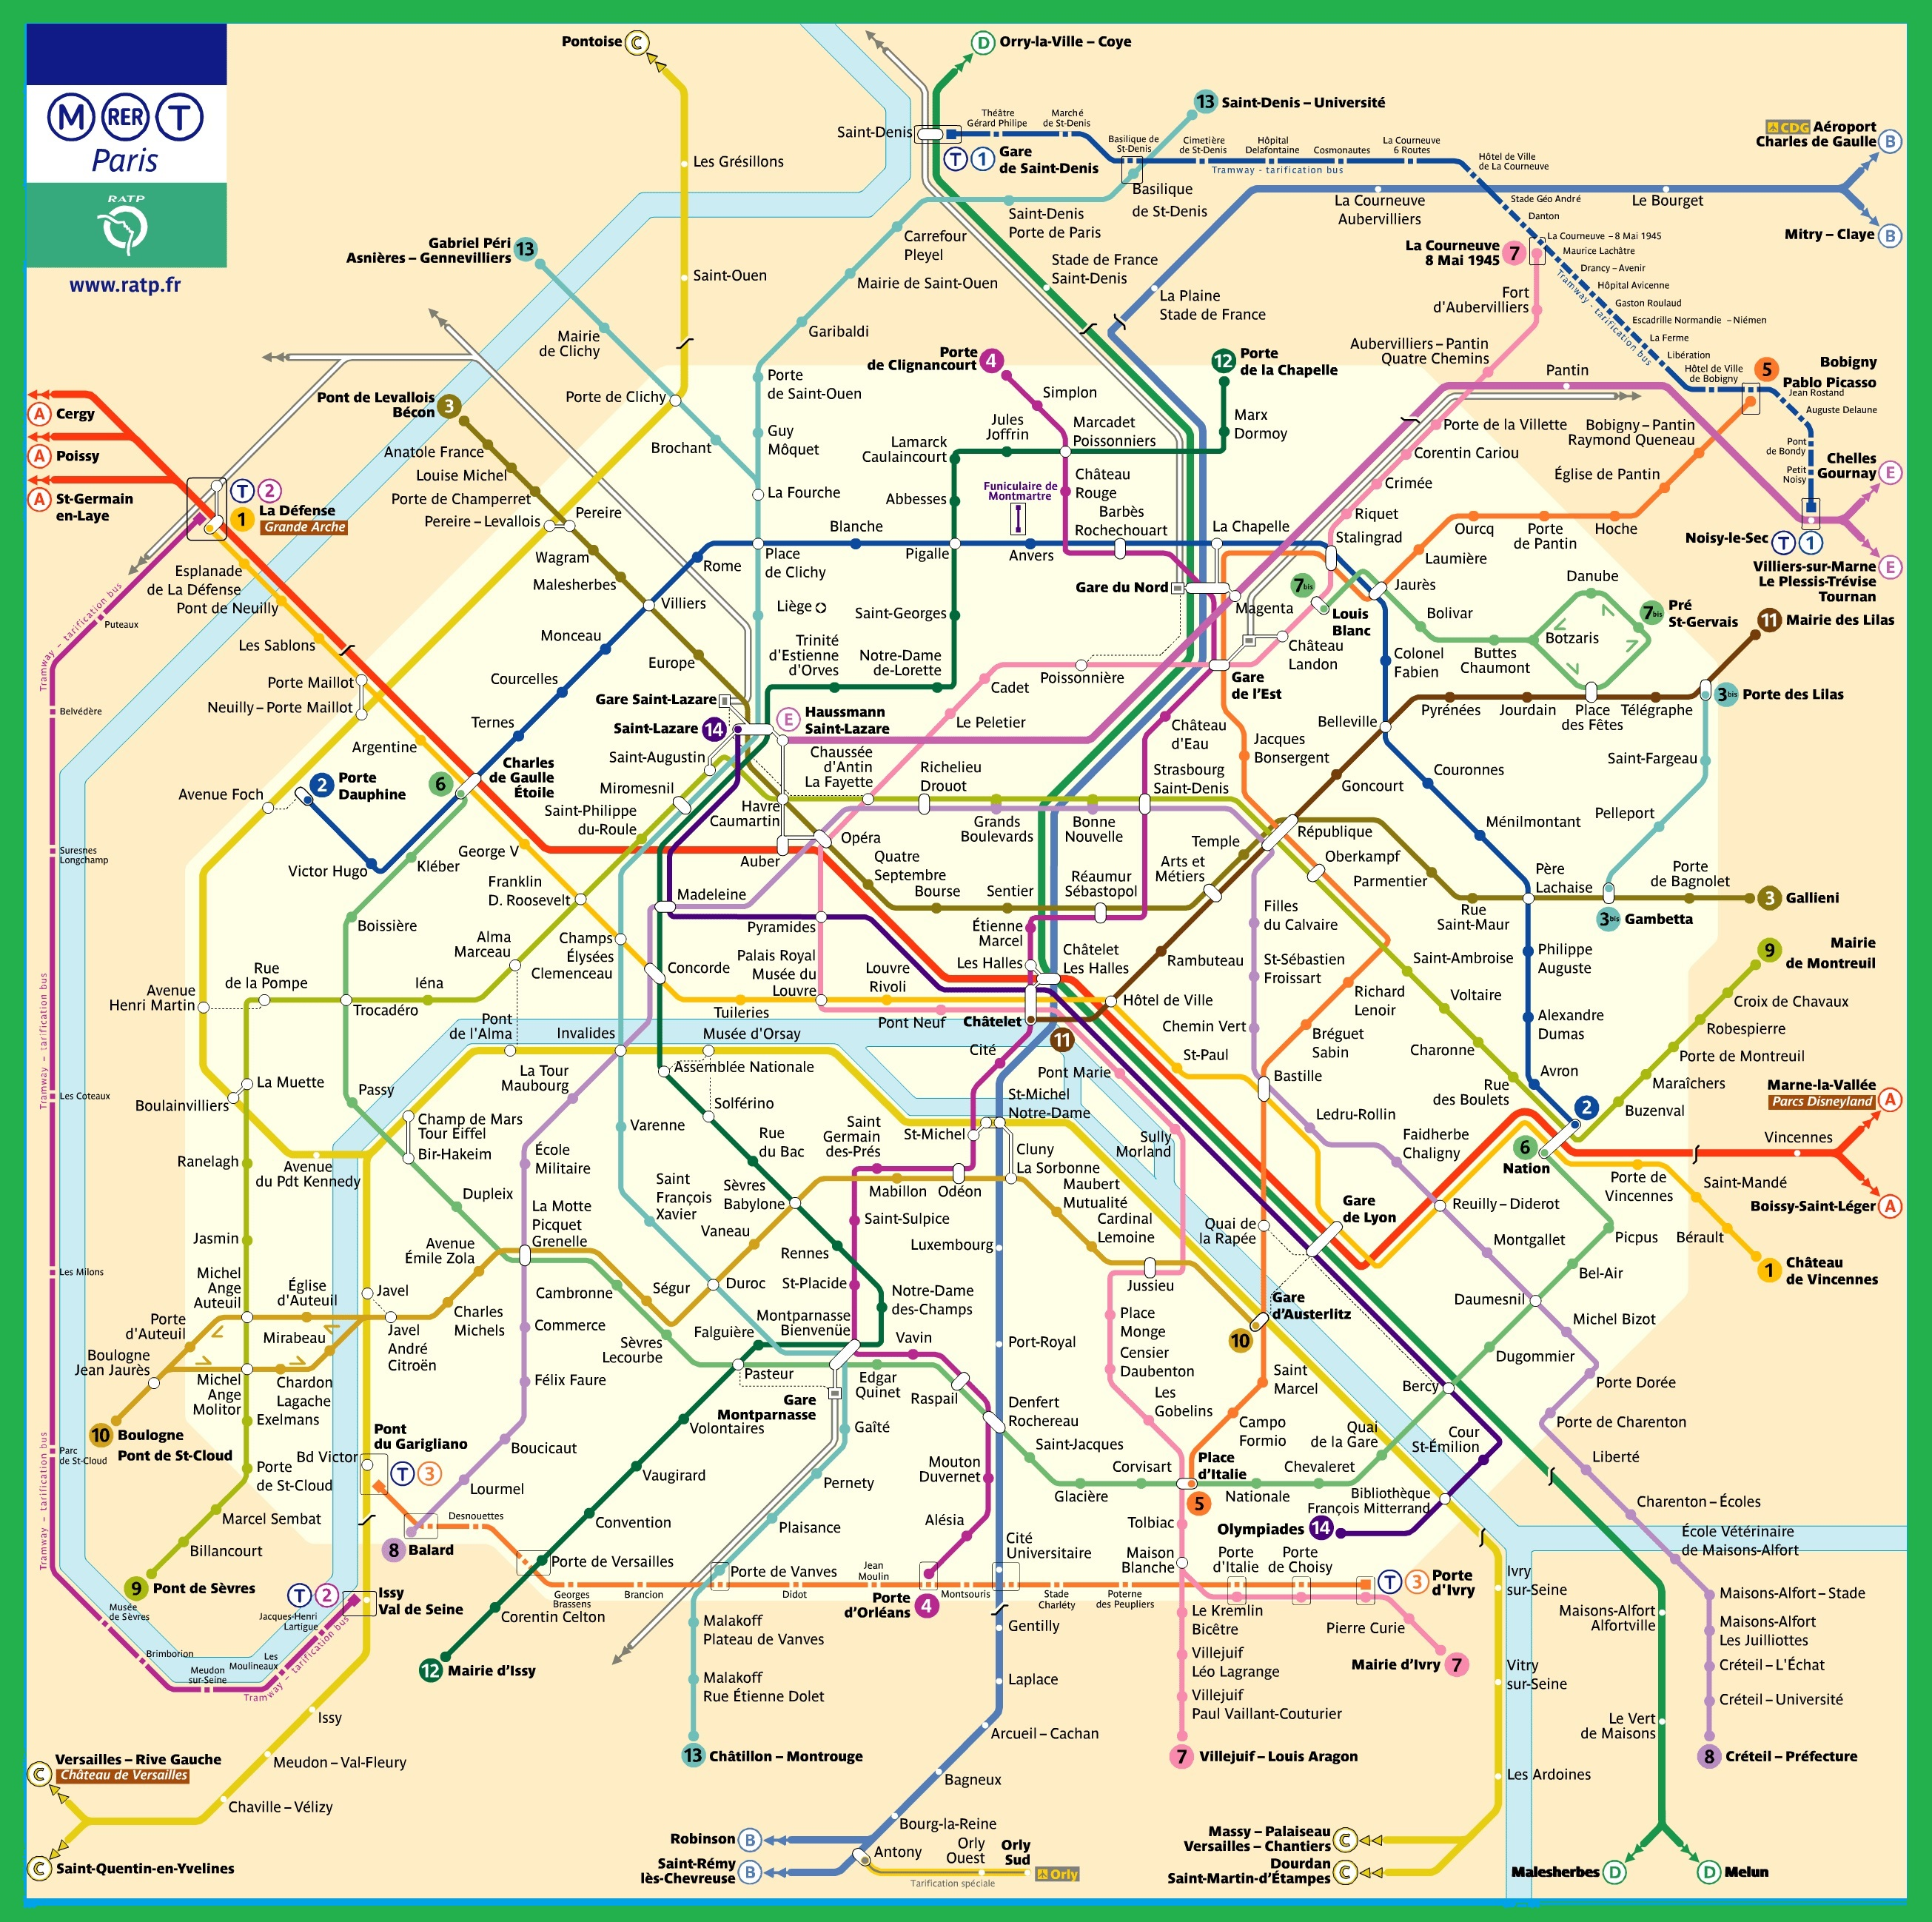 plan metro paris - Photo